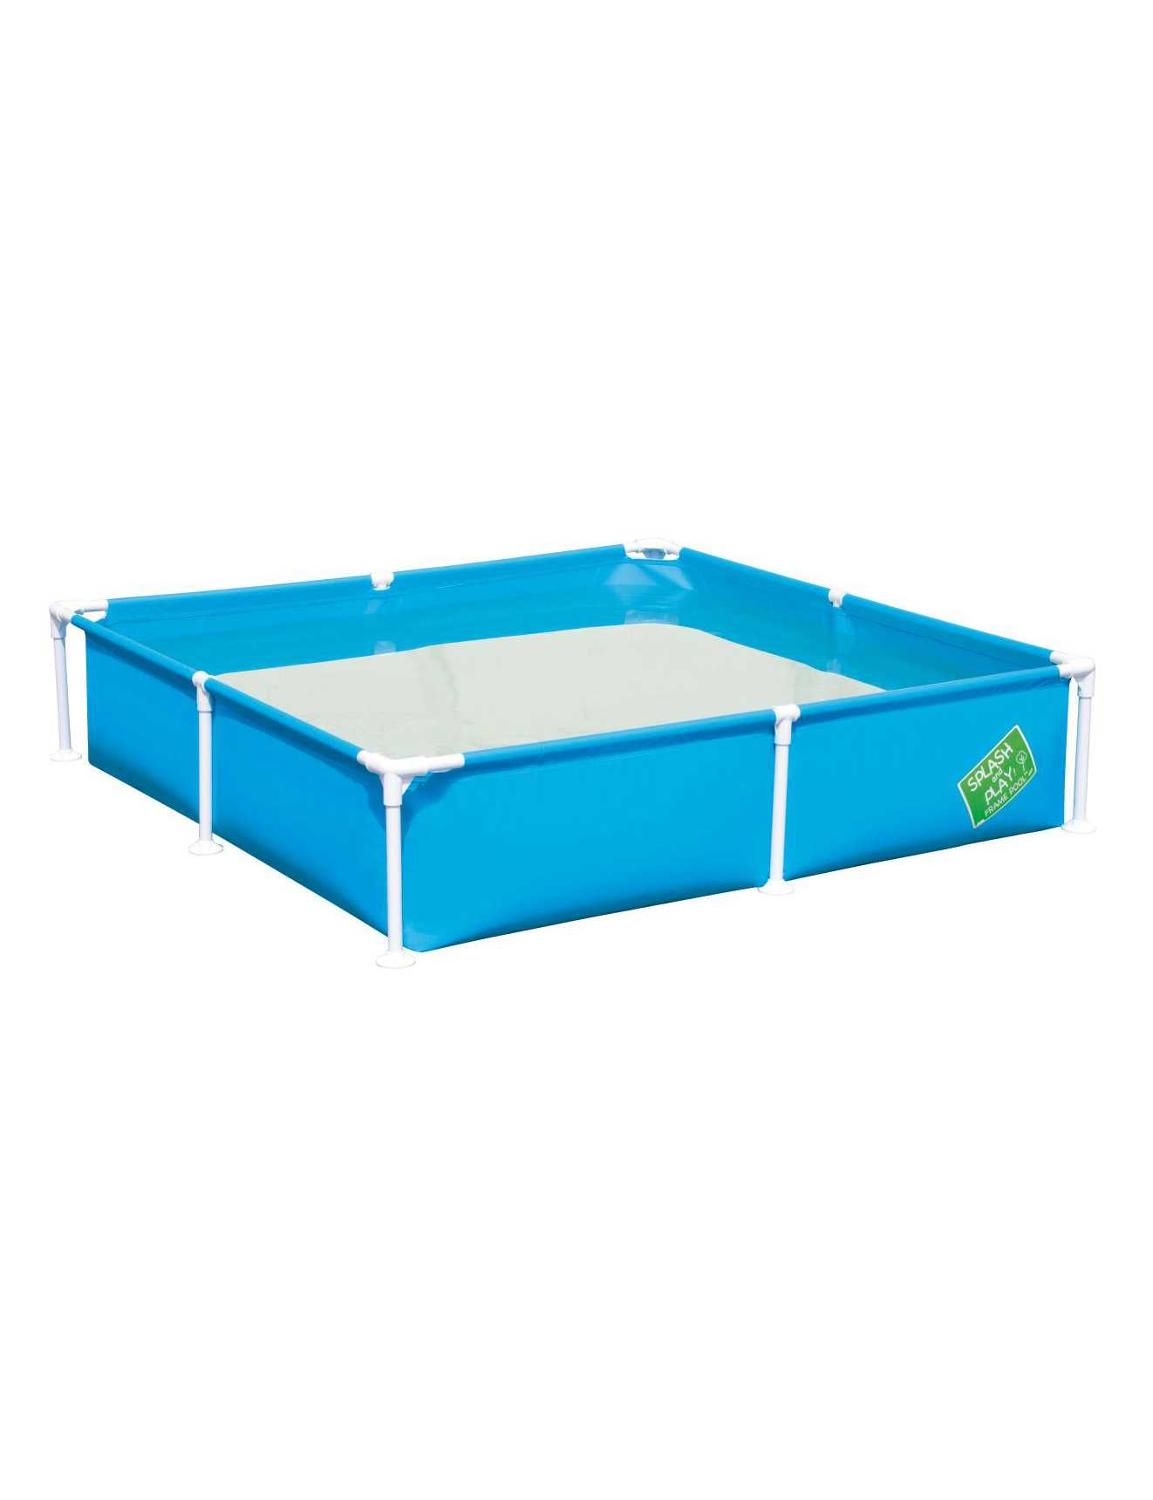 Children's Pool Scaffold Square Summer For Garden Leisure Children 163x163x35,5 Cm, 771 L, Bestway, 3 Colors, Item No. 56218